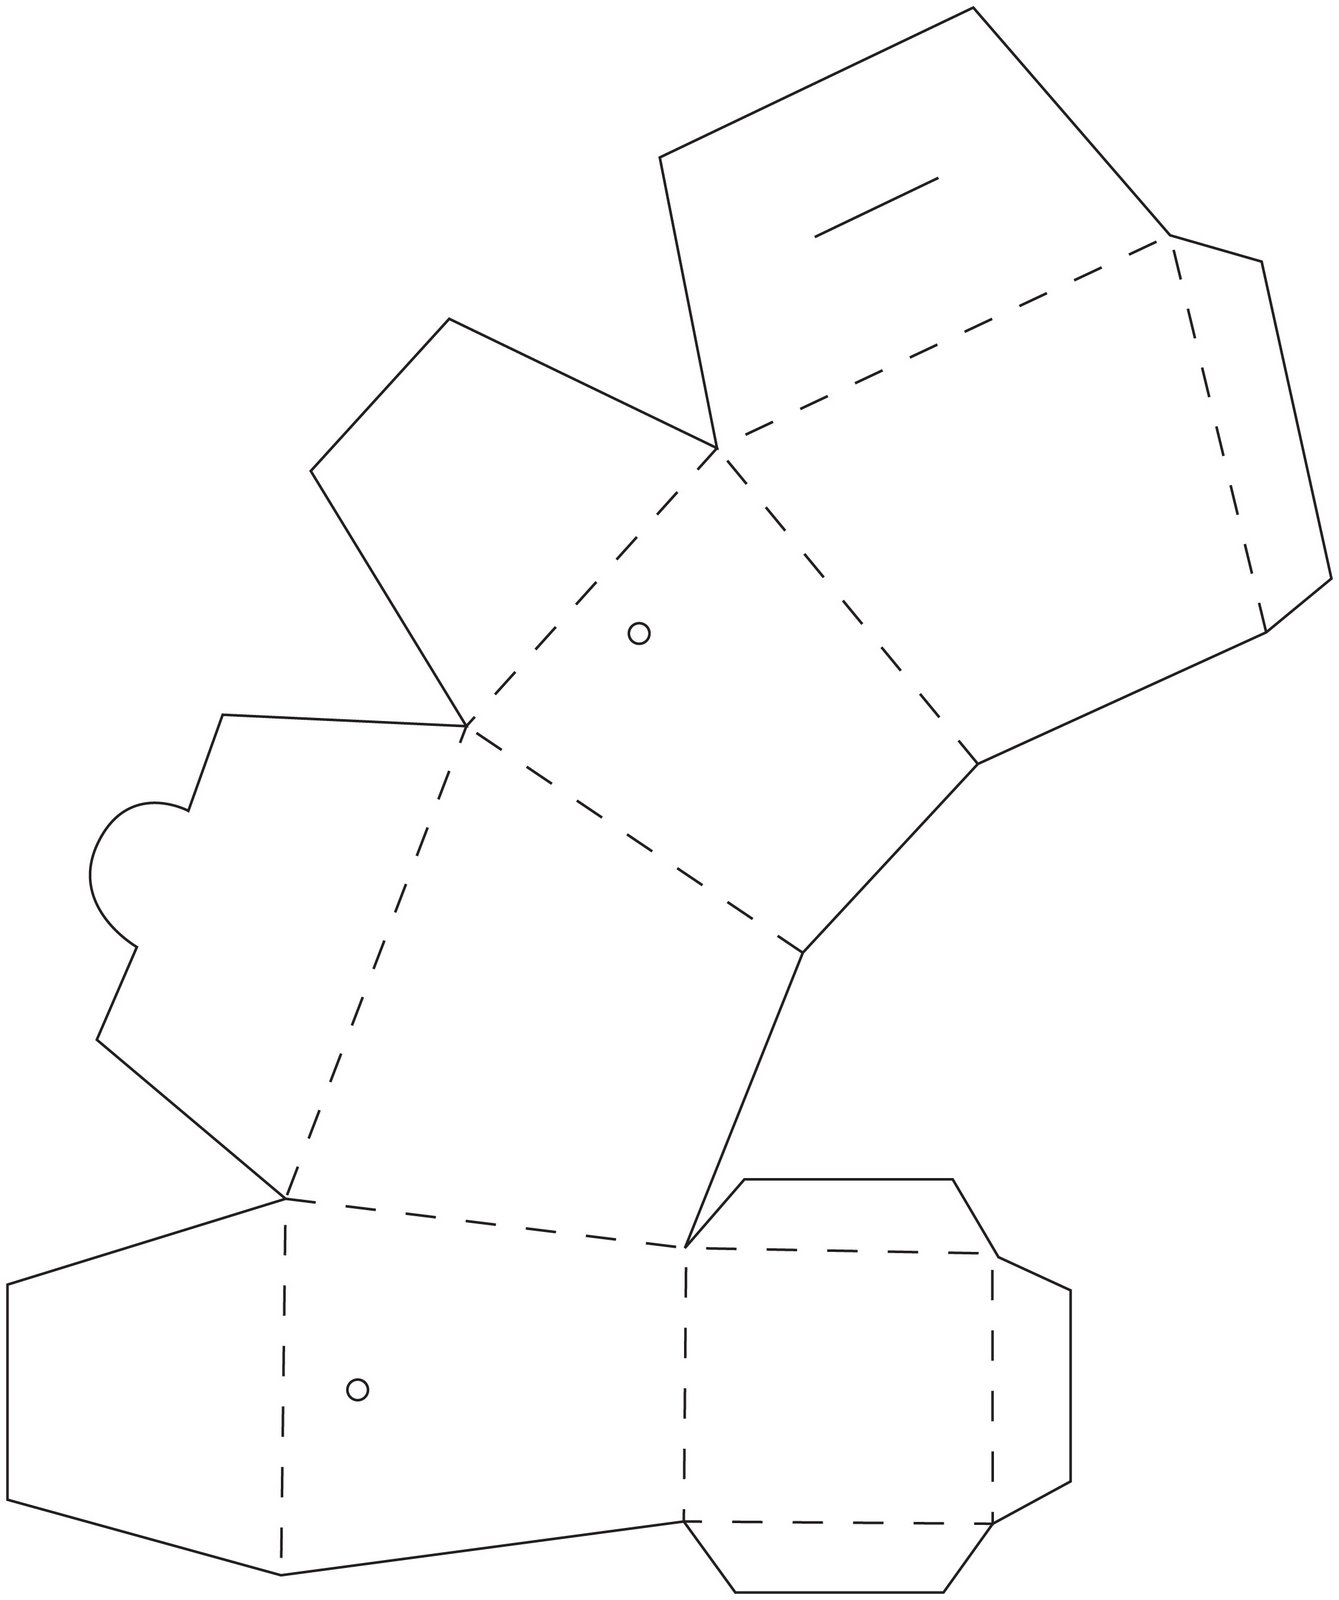 Butterfly Stencil as well 189925309261325073 additionally Image2 as well 1800 Square Feet 4 Bedrooms 3 Bathroom Cottage House Plans 3 Garage 30439 together with Anchor Outline. on 1 bedroom crafts